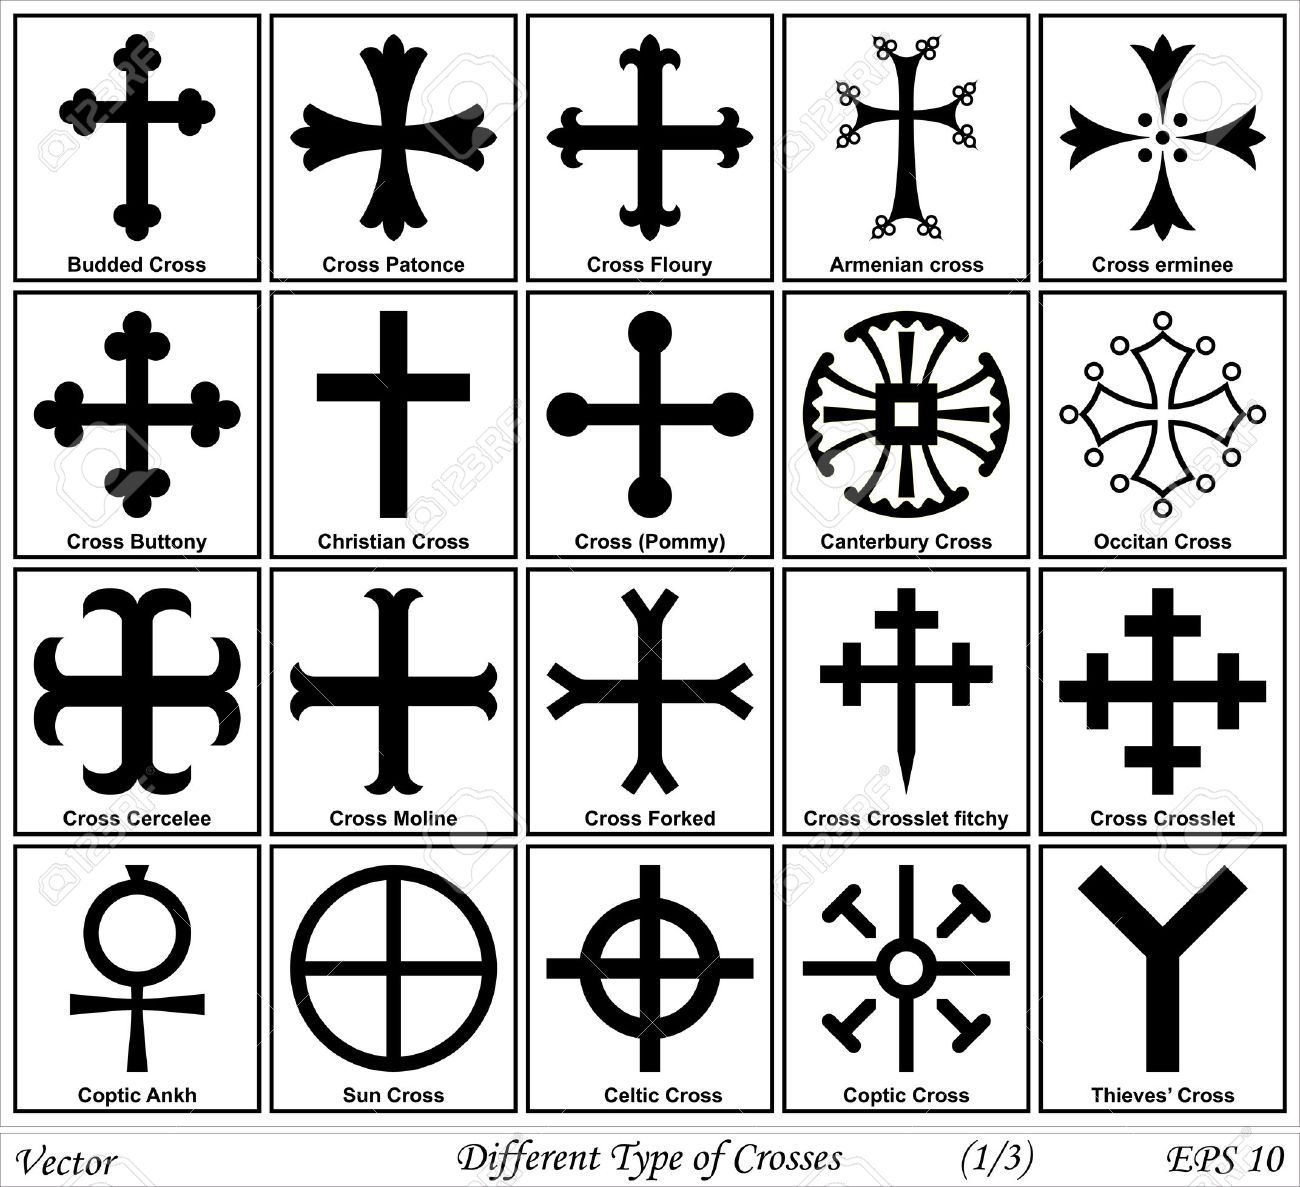 Different types of crosses and their meanings shapes of crosses different types of crosses and their meanings shapes of crosses google search biocorpaavc